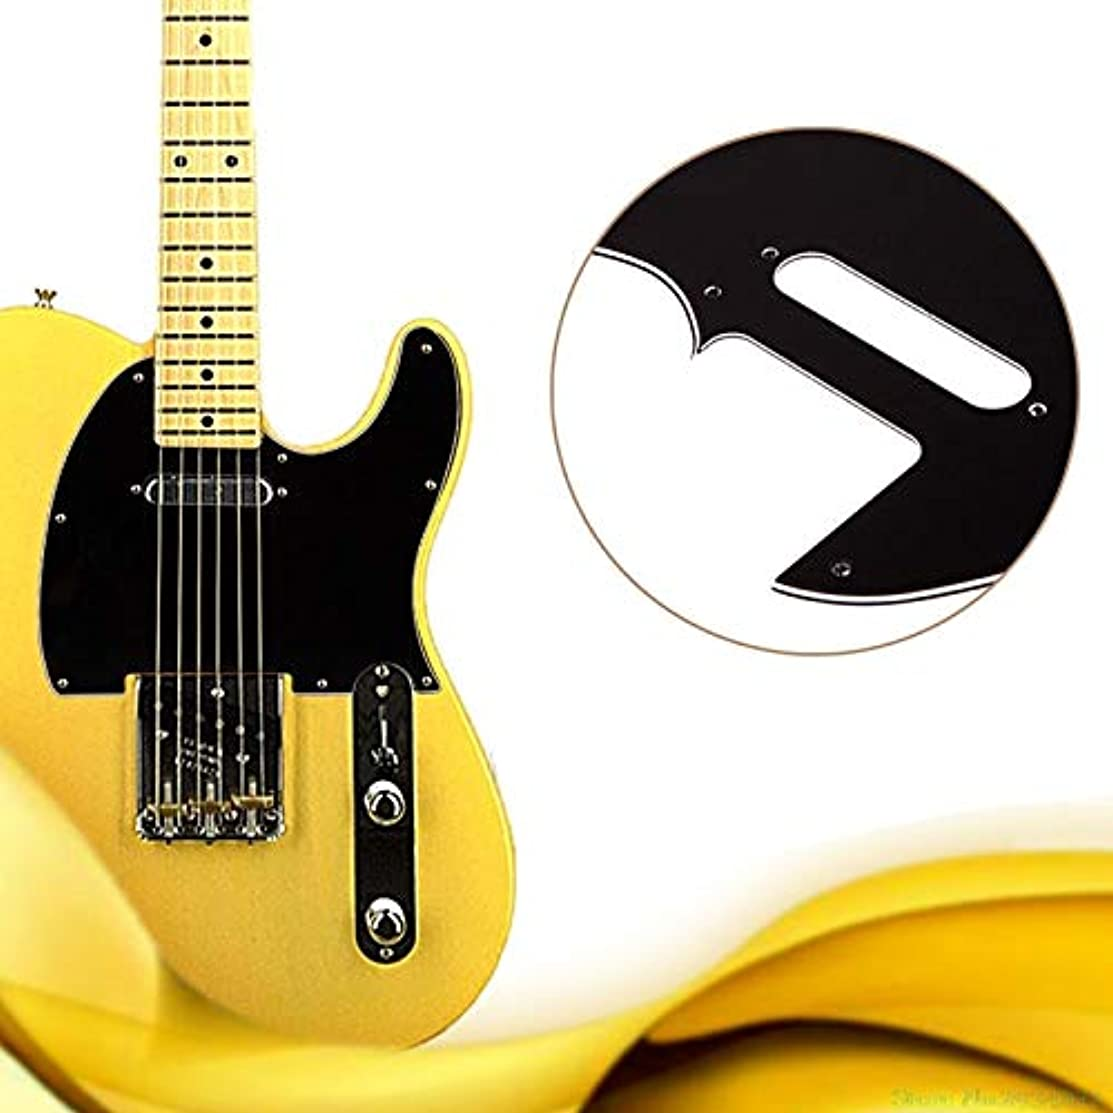 Susie-Smile - New 3 Ply Tele Style Electric Guitar Pick Guard Scratch Plate Fit Telecaster Black